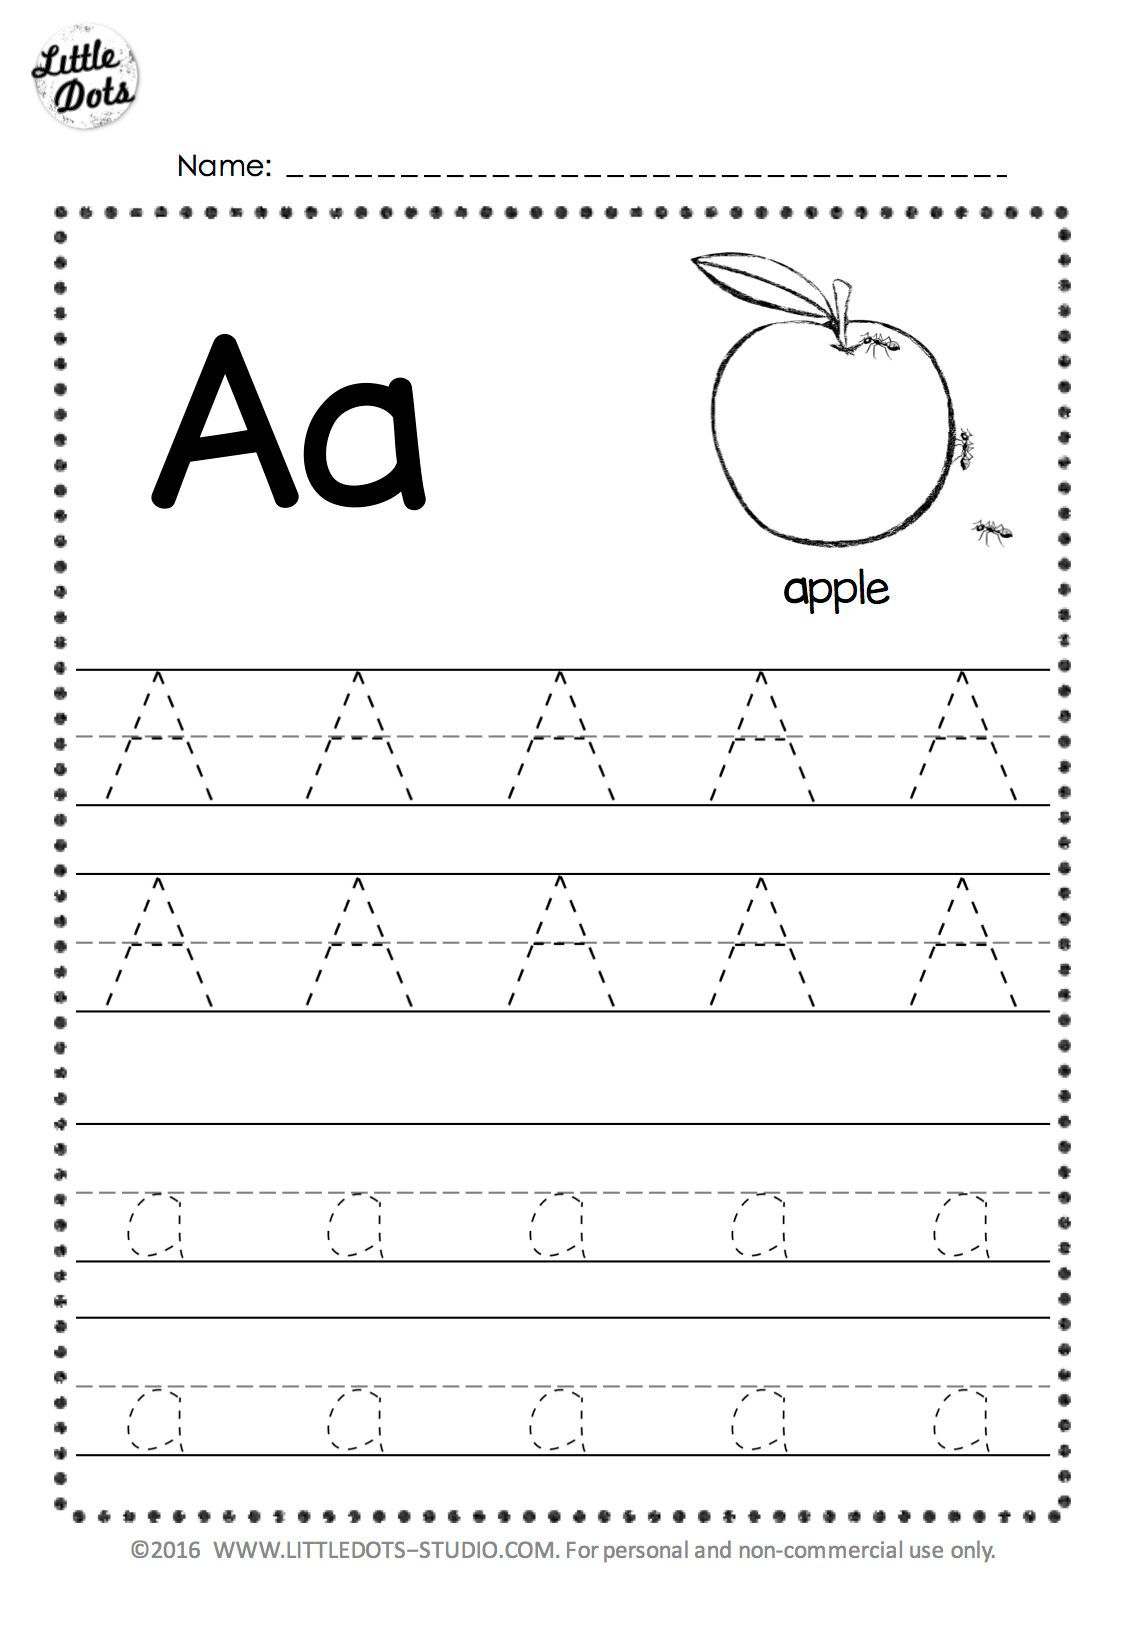 Free Letter A Tracing Worksheets Alphabet Tracing Worksheets Tracing Worksheets Preschool Alphabet Worksheets Preschool